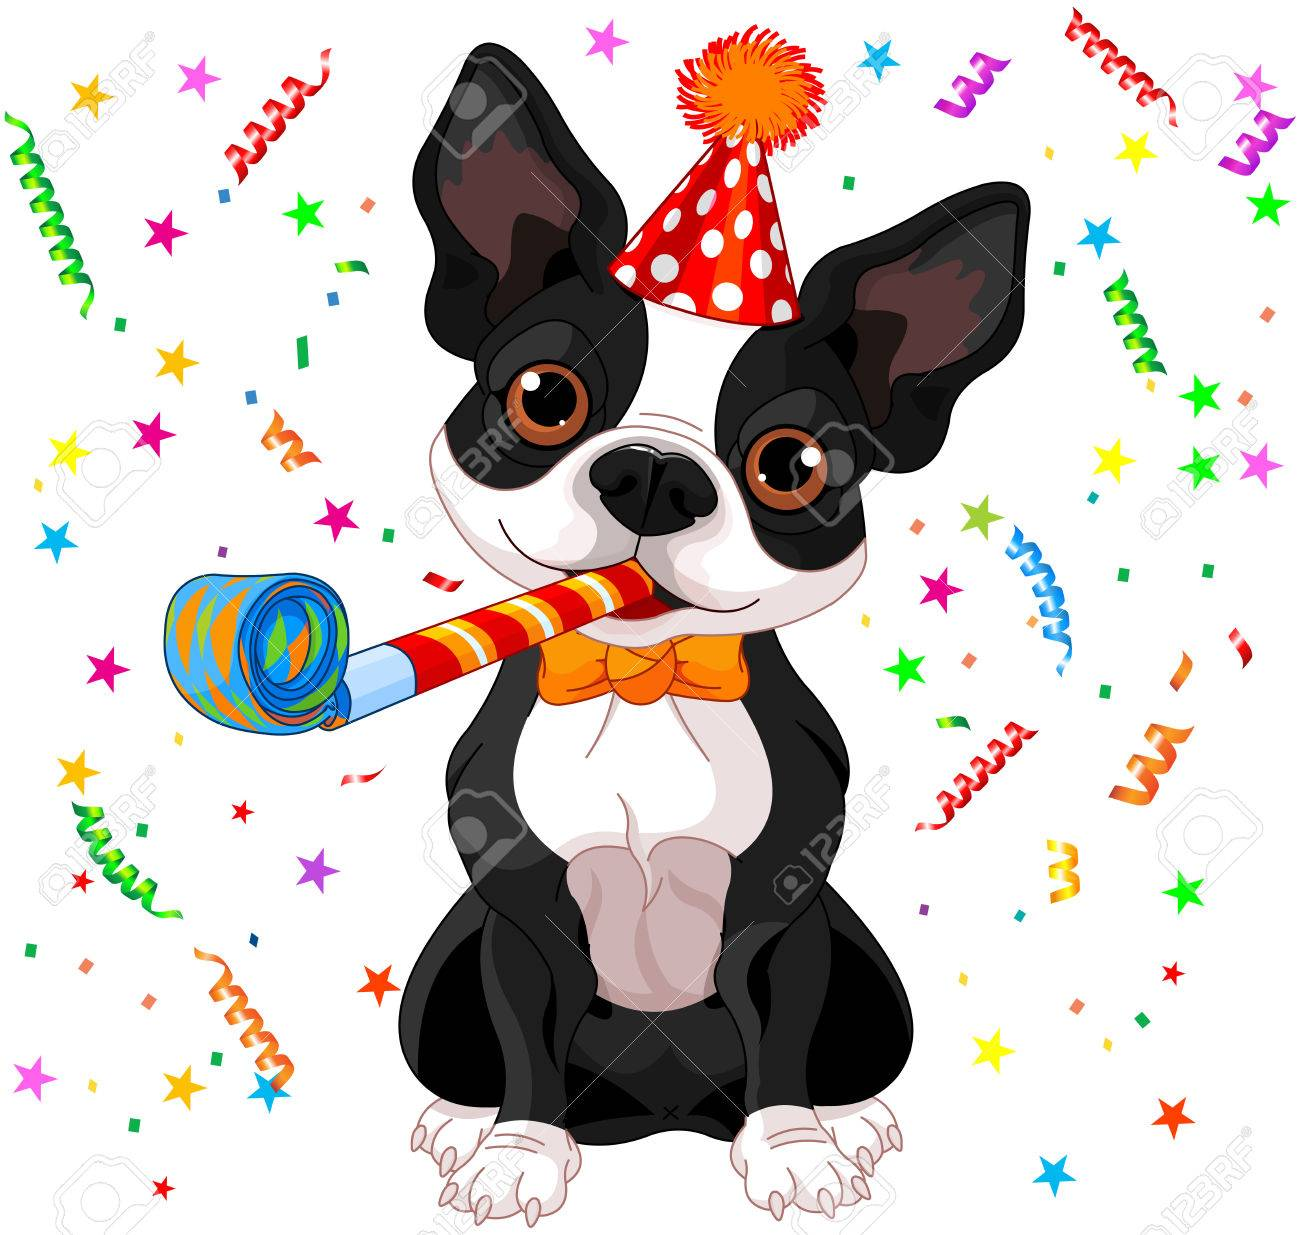 Eduquer en club canin ou chez soi? - Page 2 35588778-illustration-of-cute-boston-terrier-celebrating